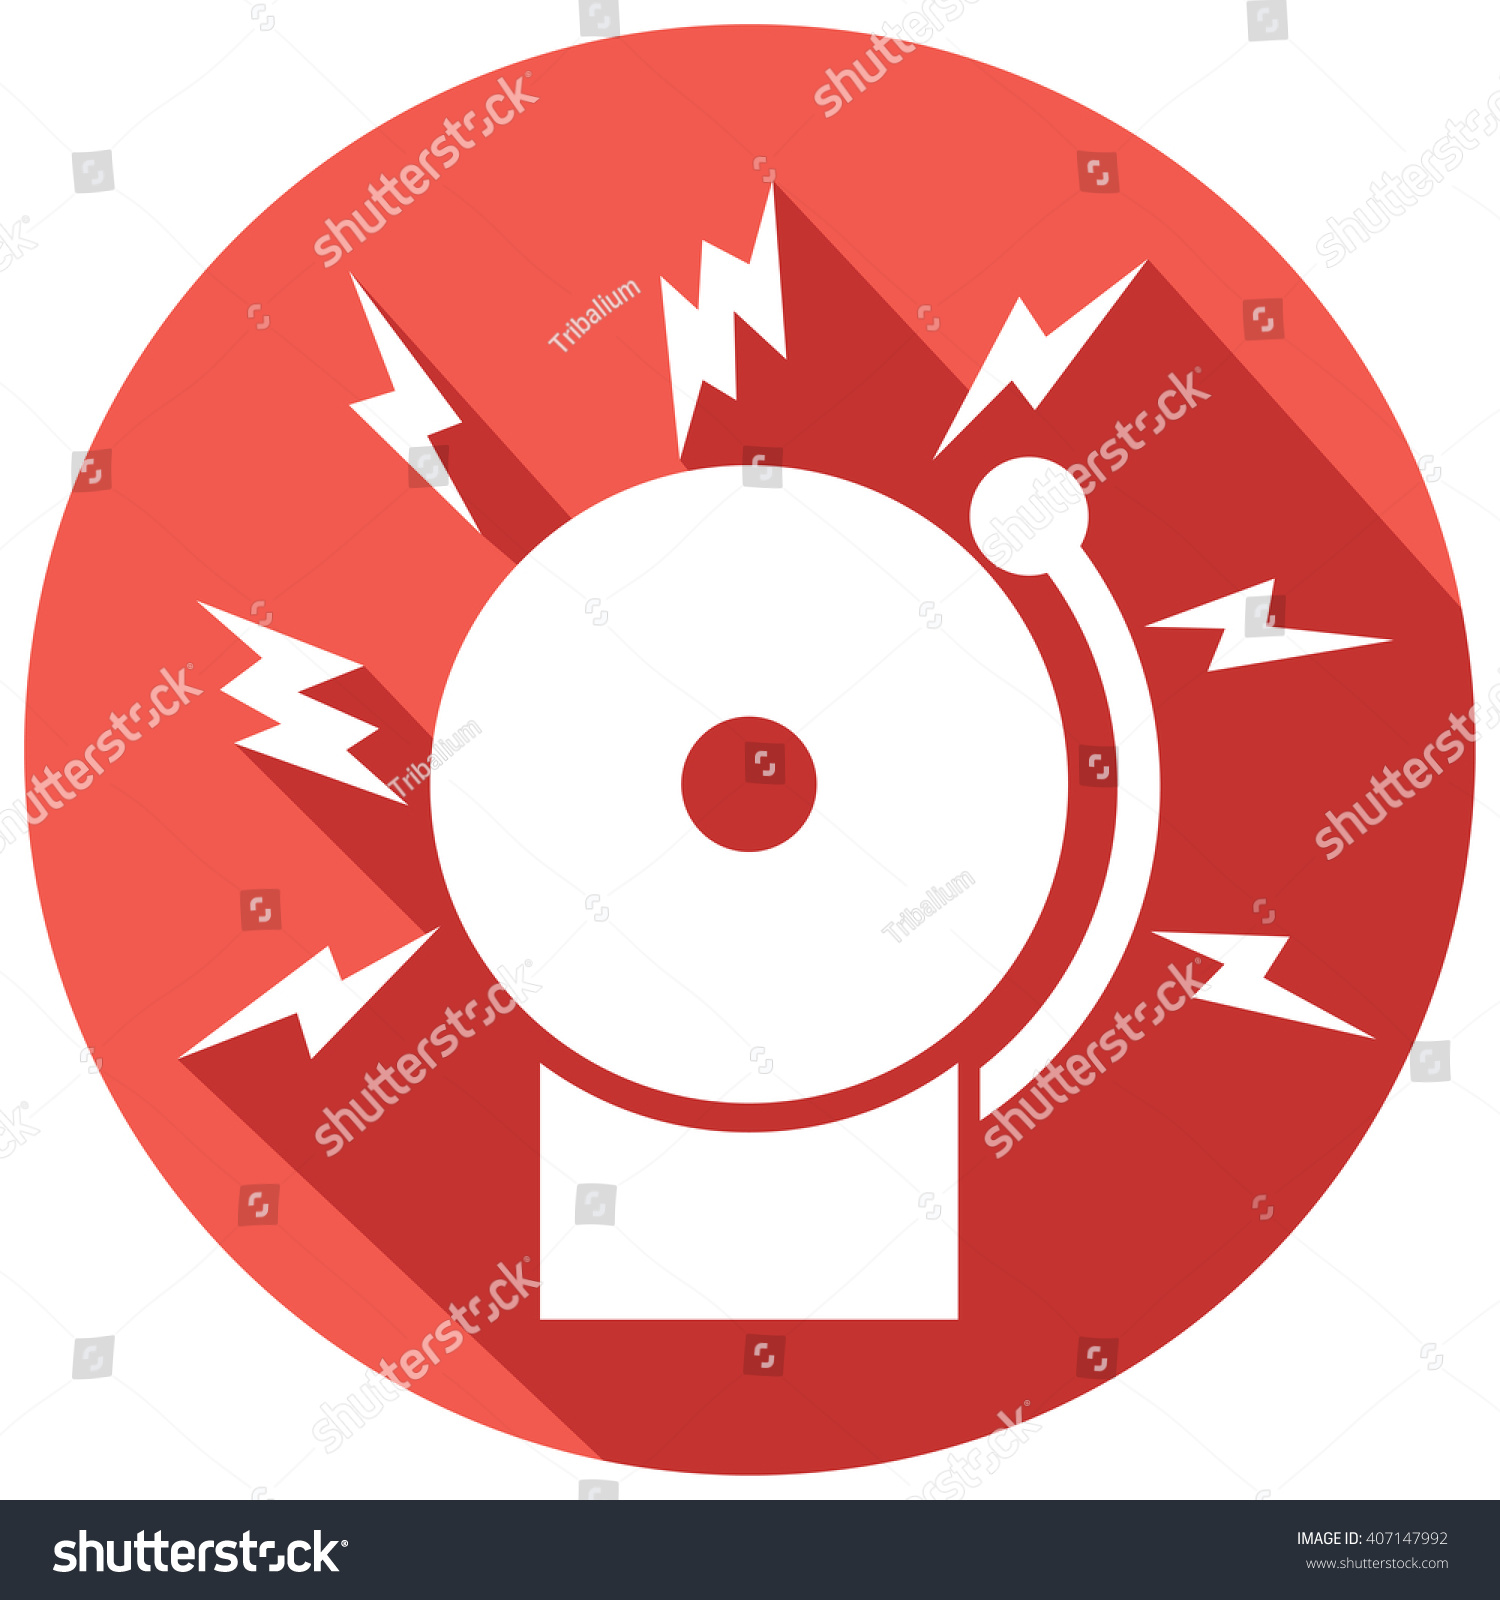 hight resolution of fire alarm icon bell stock vector 407147992 shutterstock